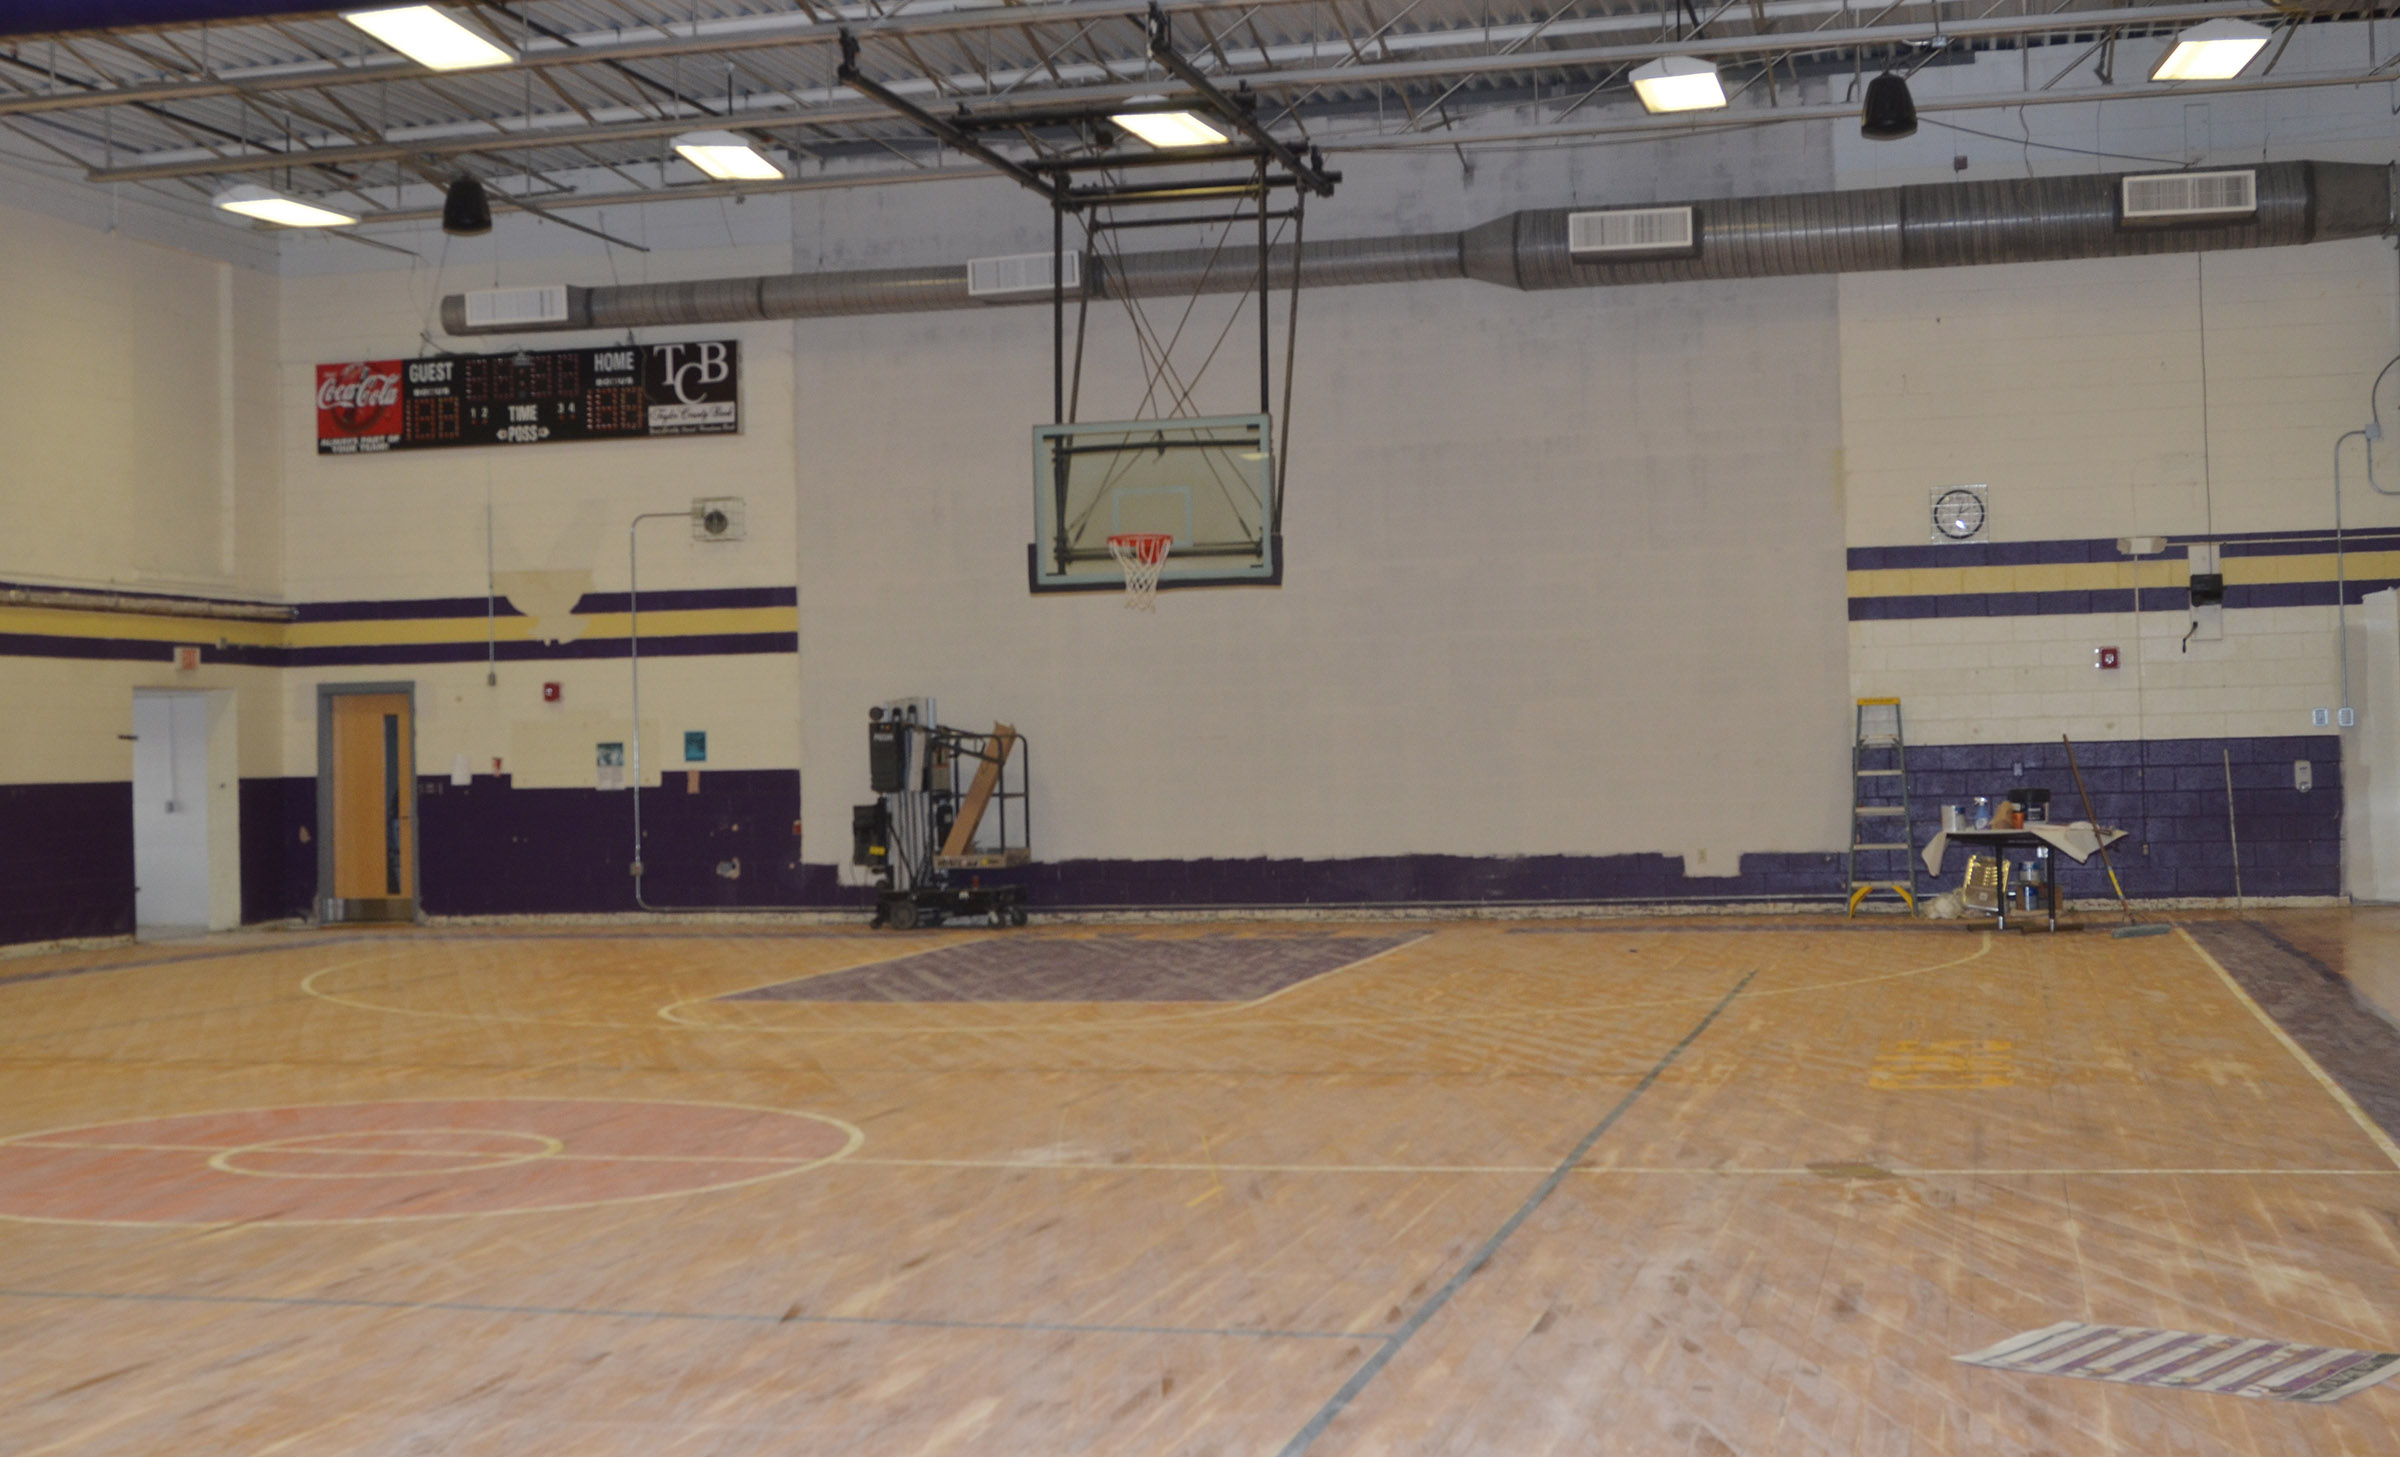 Work has begun to refinish the CES gymnasium floor and to repaint the walls.